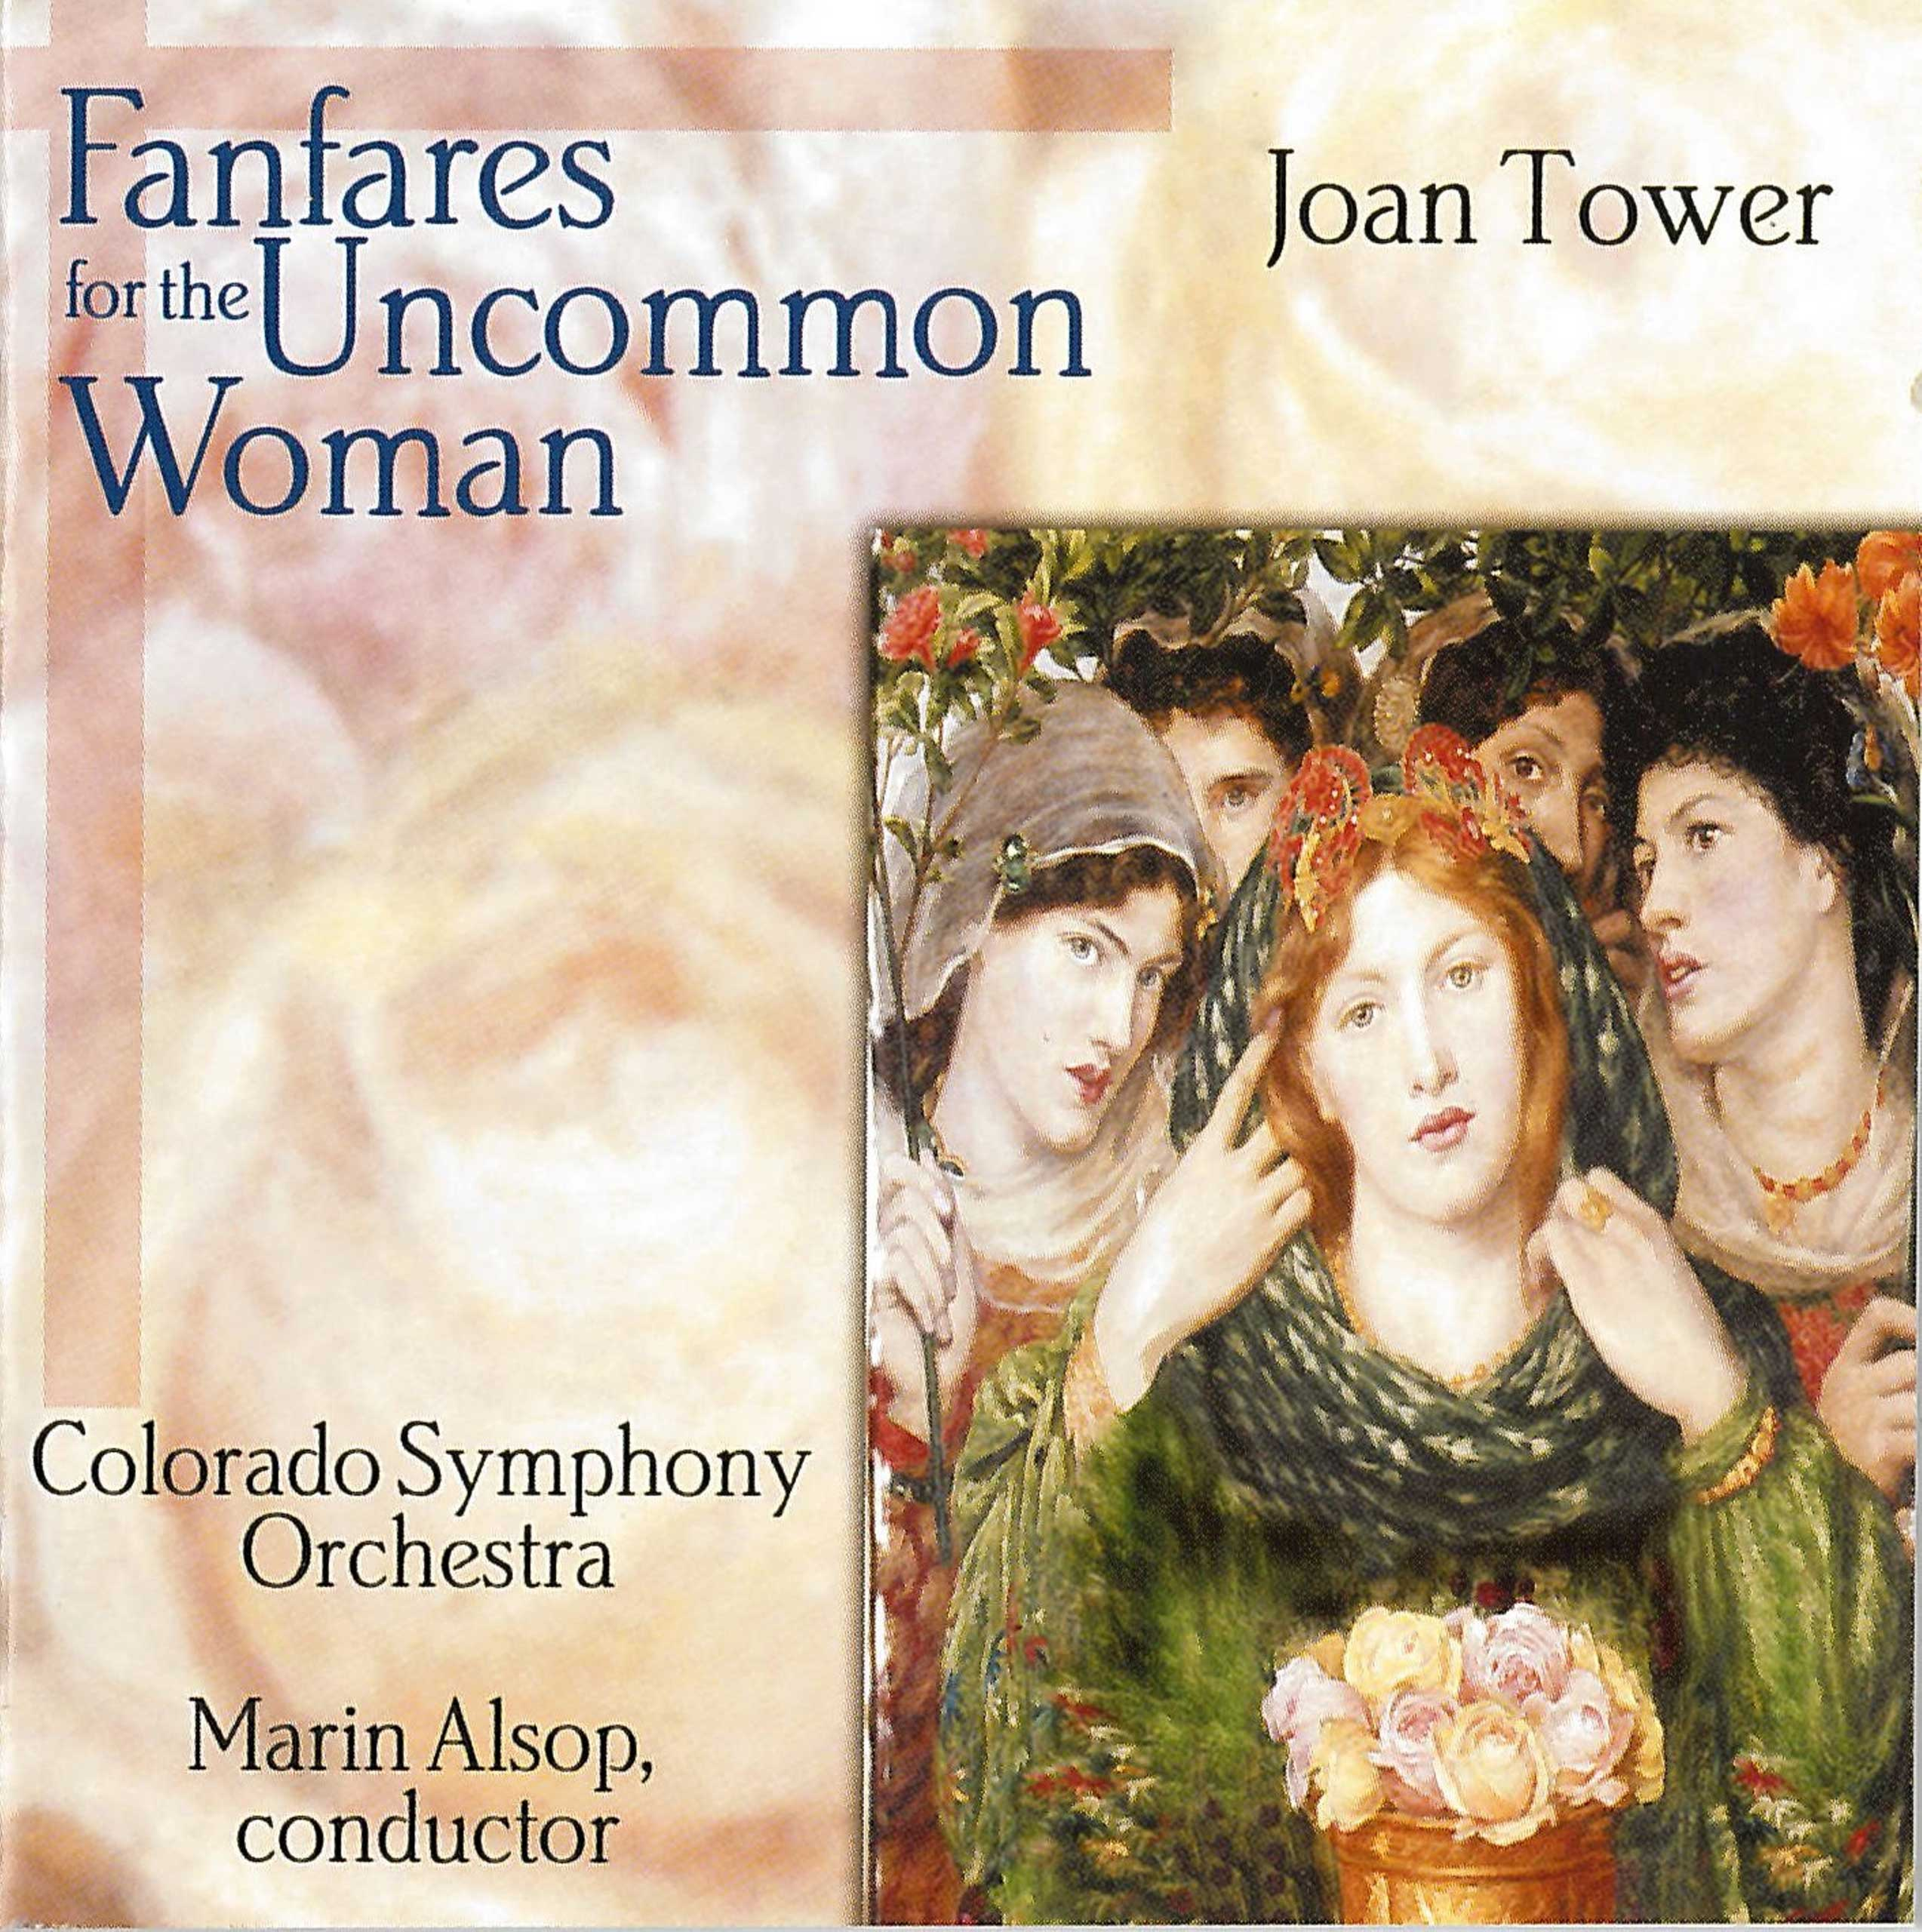 """A five-part composition written between 1986 and 1993 by composer Jaon Tower, """"Fanfares for the Common Woman"""" celebrated women in music. (KOCH International/Library of Congress)"""